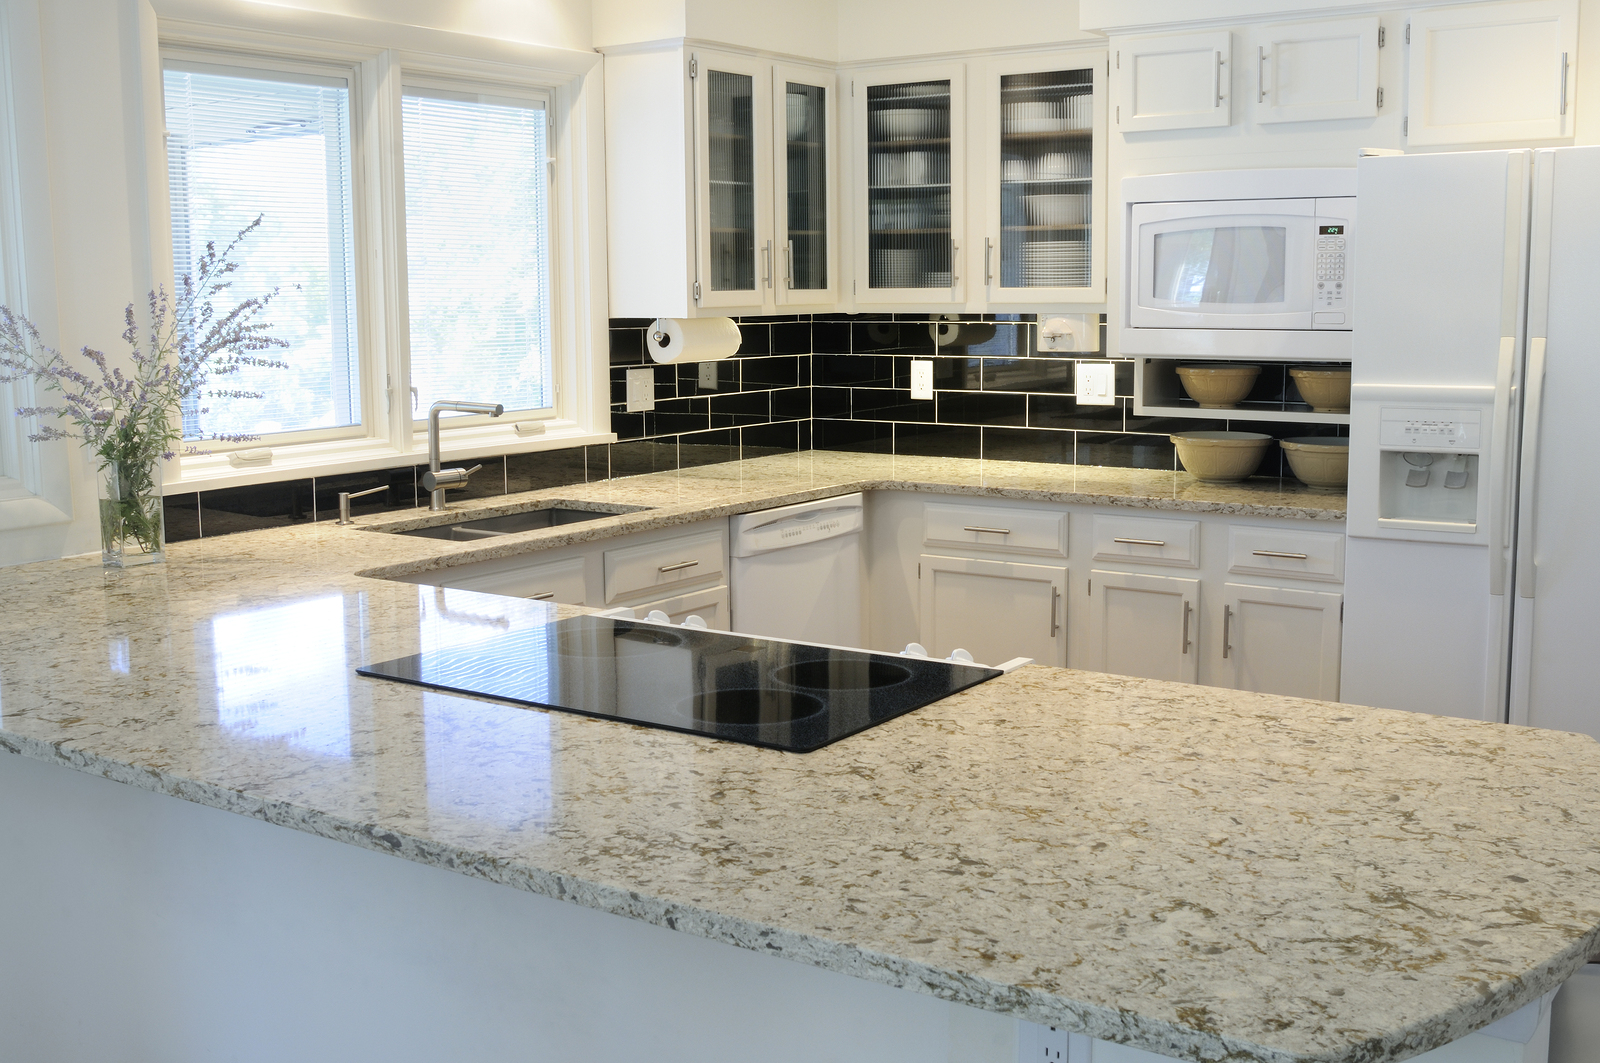 How To Care For Granite Countertops - E.W. Granite & Marble, LLC